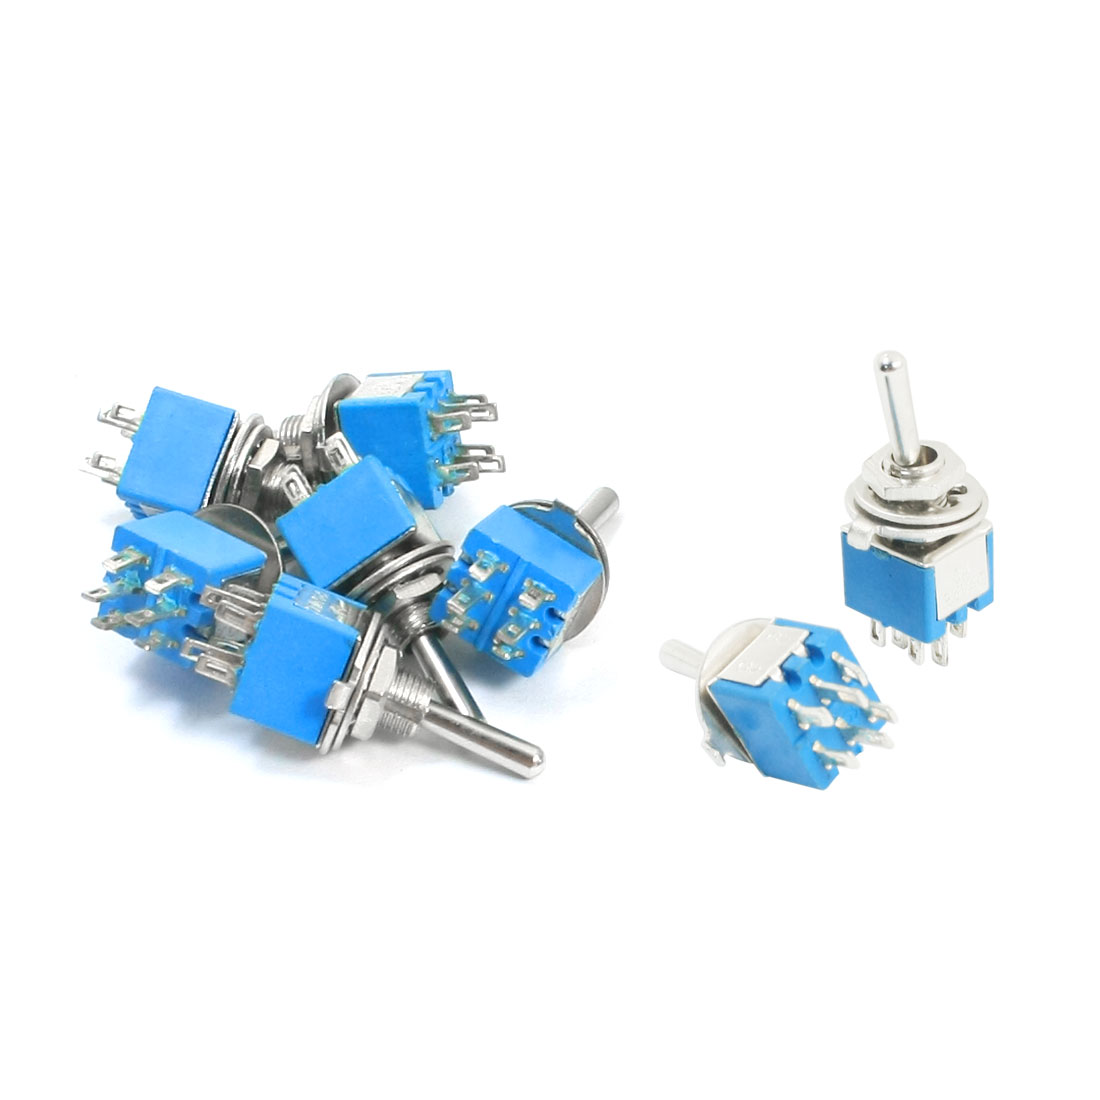 AC 125V 3A ON/ON 2 Positions 6 Pin Latching Power Toggle Switch Blue 8pcs